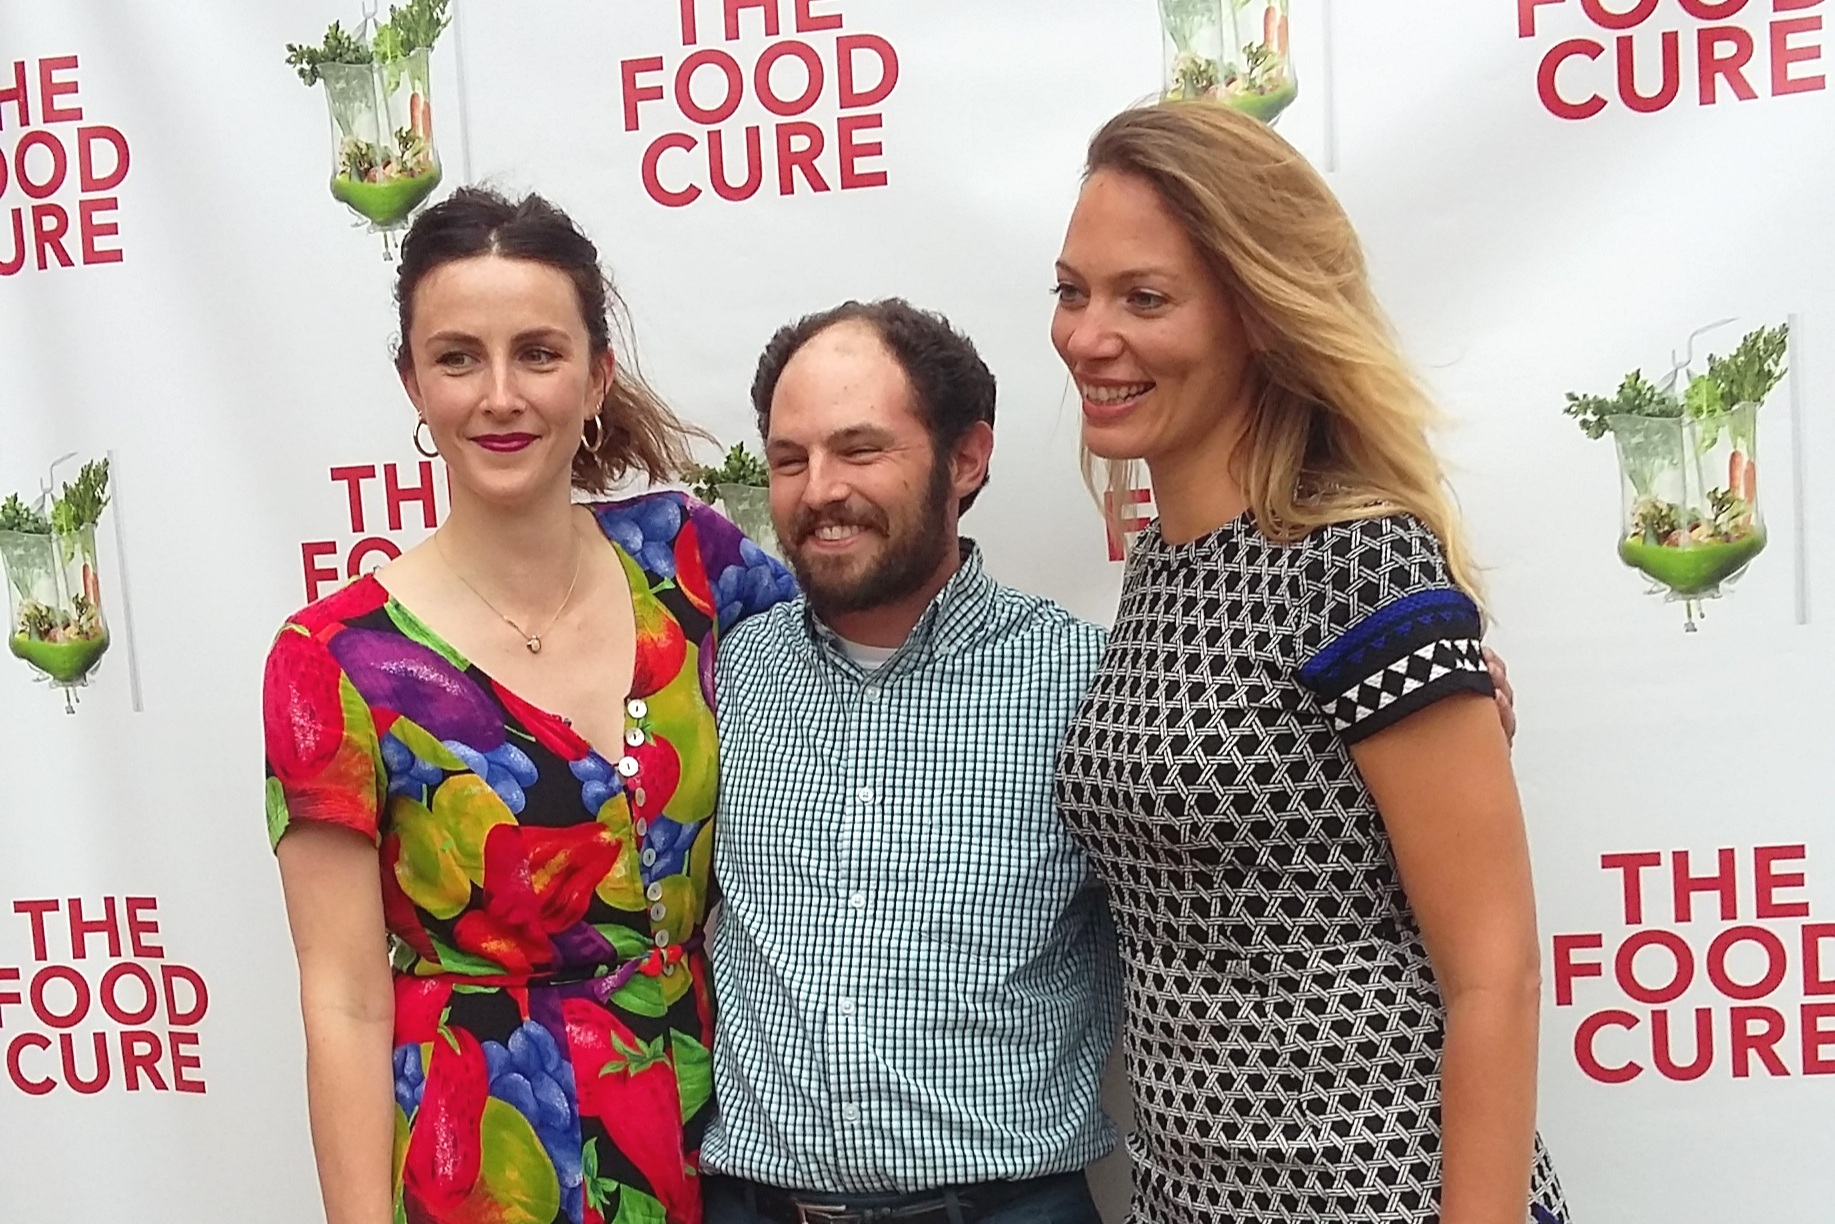 EUROPEAN TOUR - Our Summer 2019 European cinematic tour launches on May 25th in Zürich! Reserve your tickets to our special screenings across Europe here.Questions? zuerich@thefoodcurefilm.com